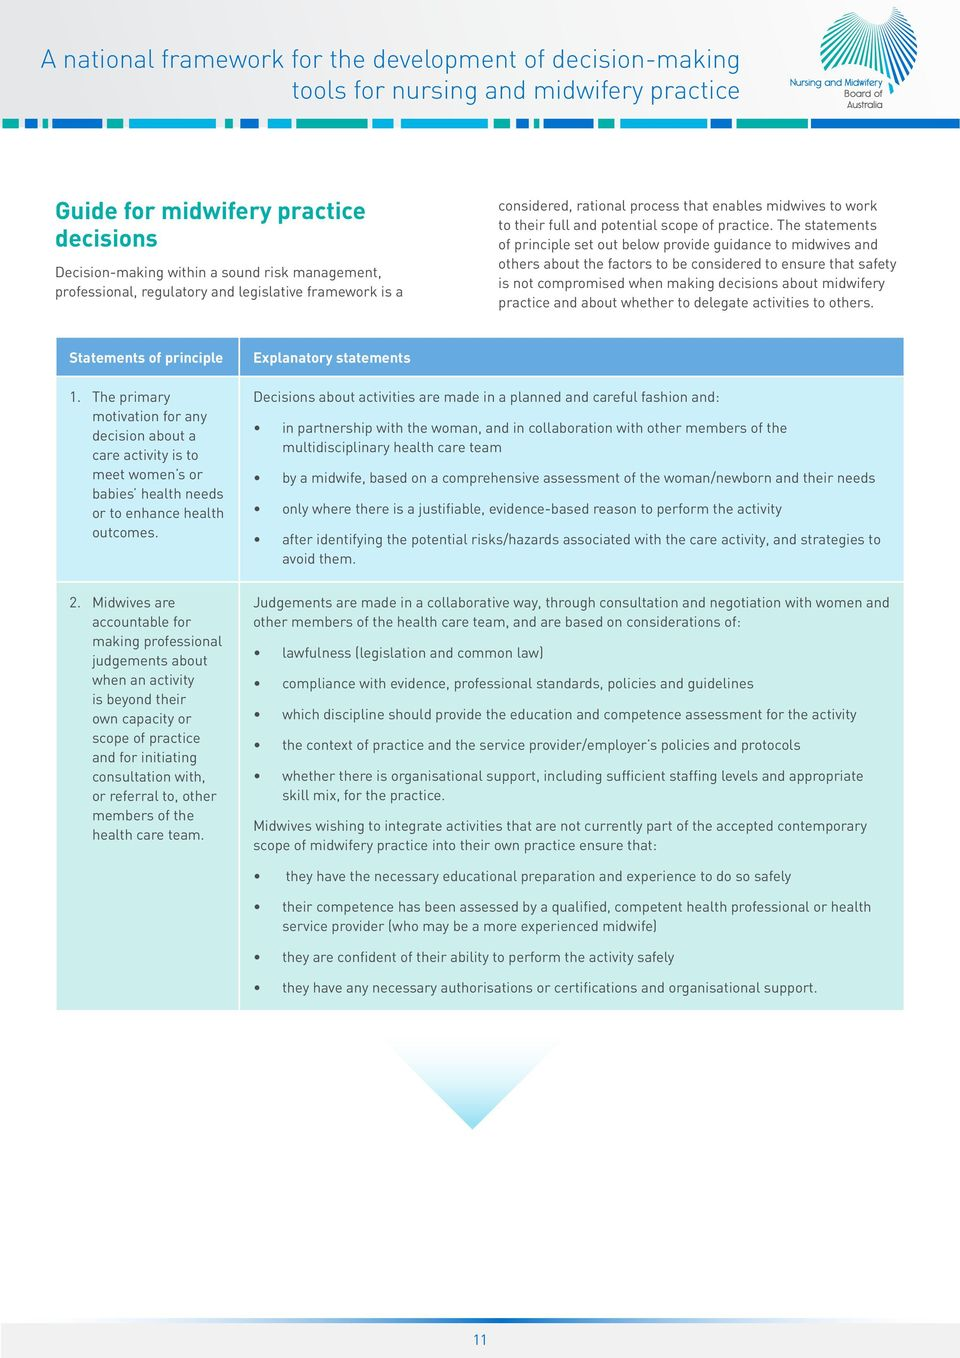 The statements of principle set out below provide guidance to midwives and others about the factors to be considered to ensure that safety is not compromised when making decisions about midwifery